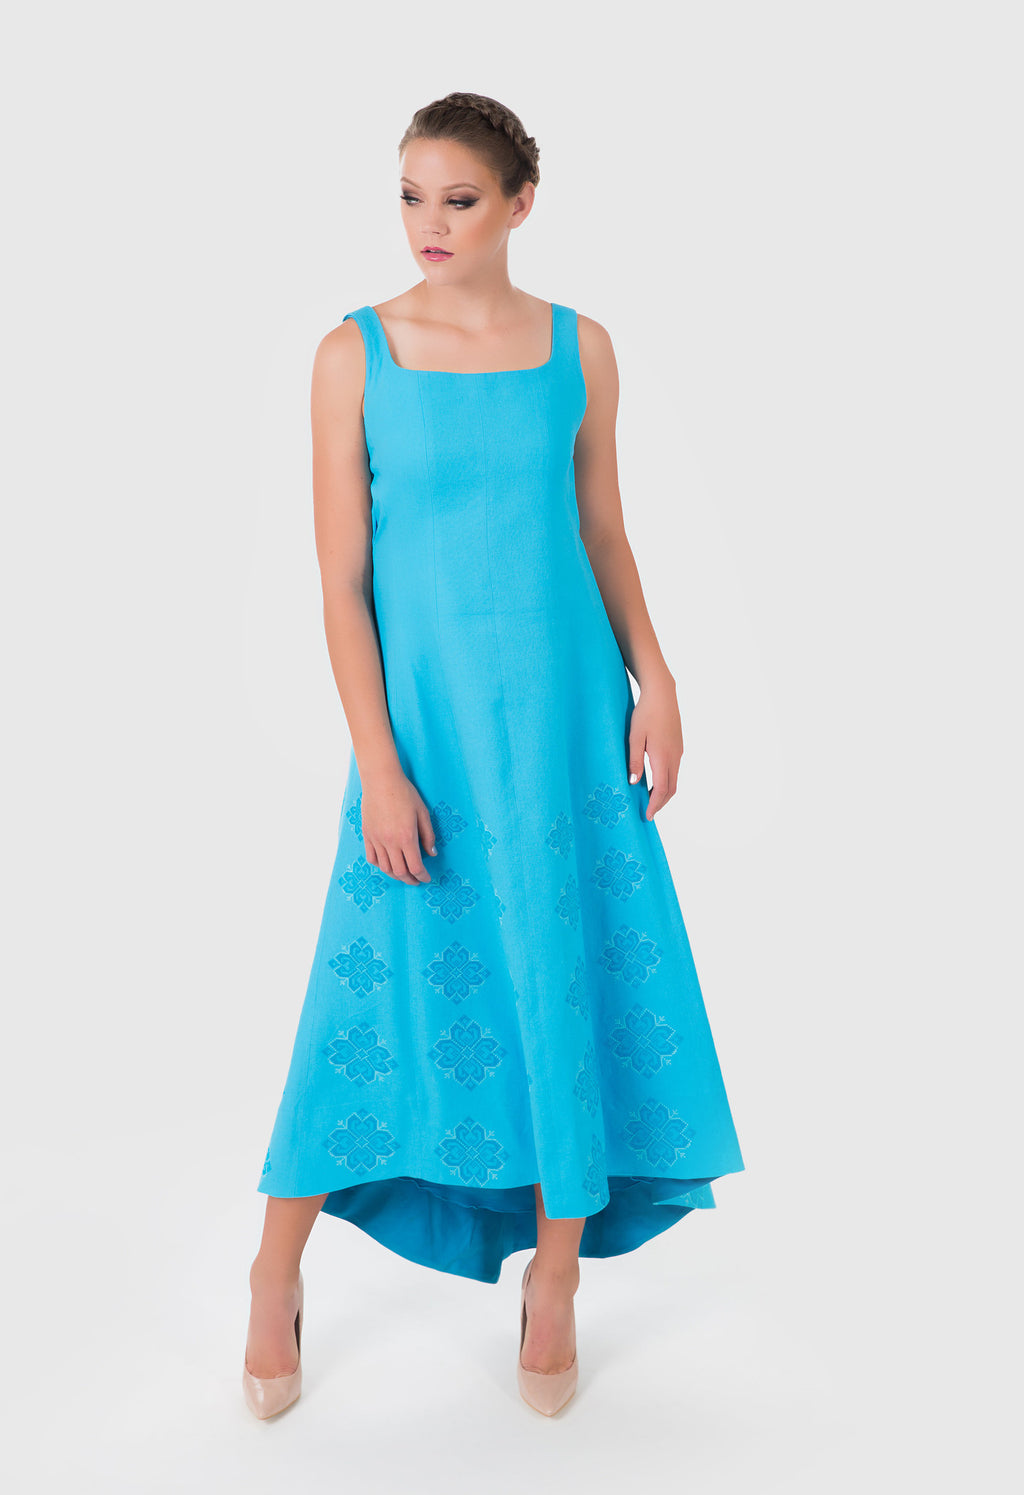 Zelenco's inspired light blue evening dress made from cotton and linen.  The frontal view shows the light embroidery.